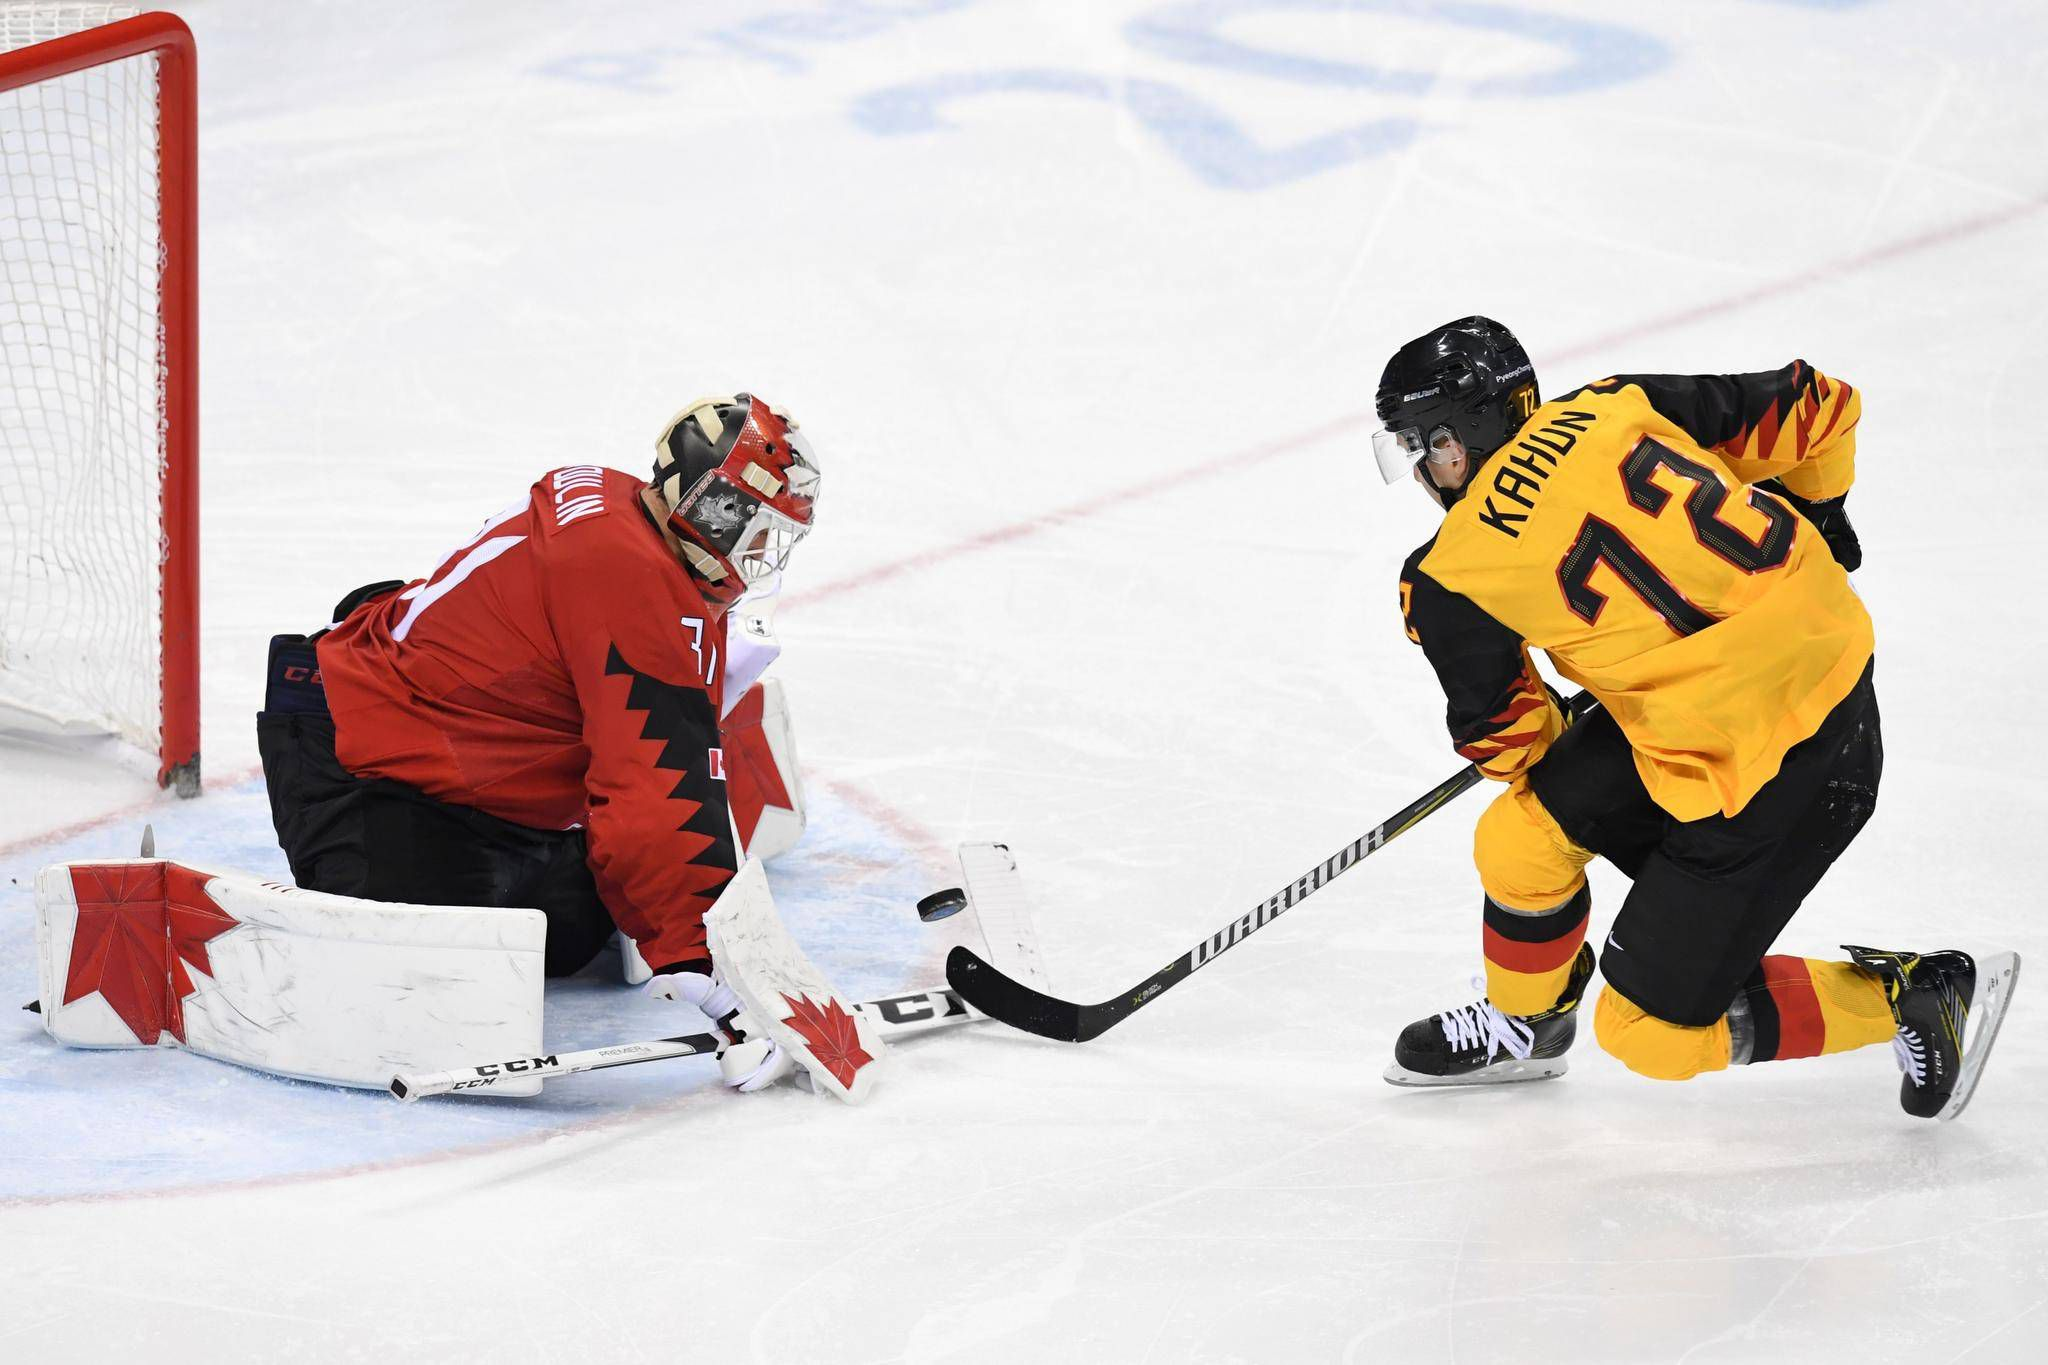 1a1ff13c001 Team Canada to play for bronze after 4-3 semi-final loss to Germany ...